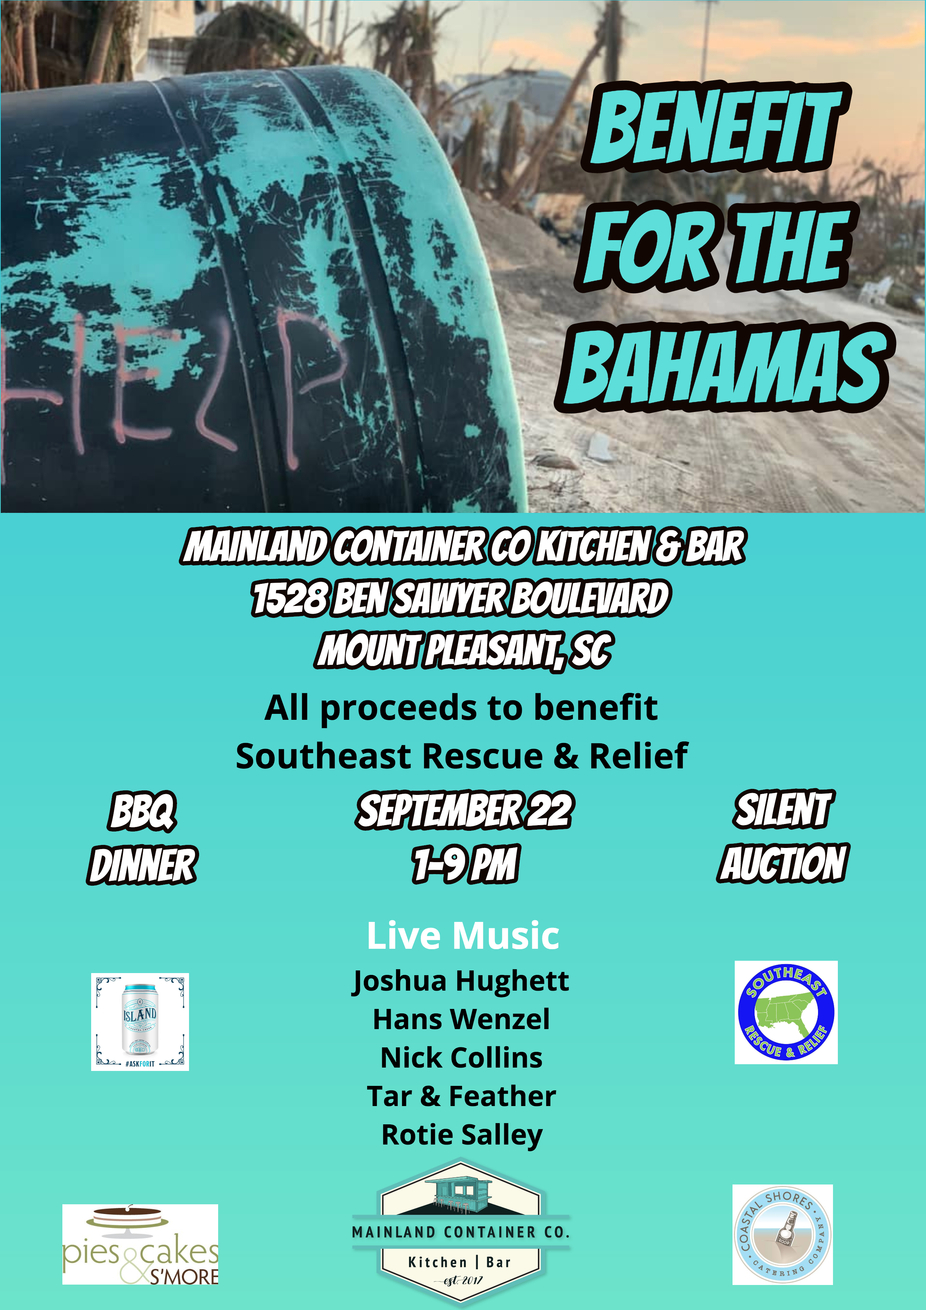 Benefit for the Bahamas event photo